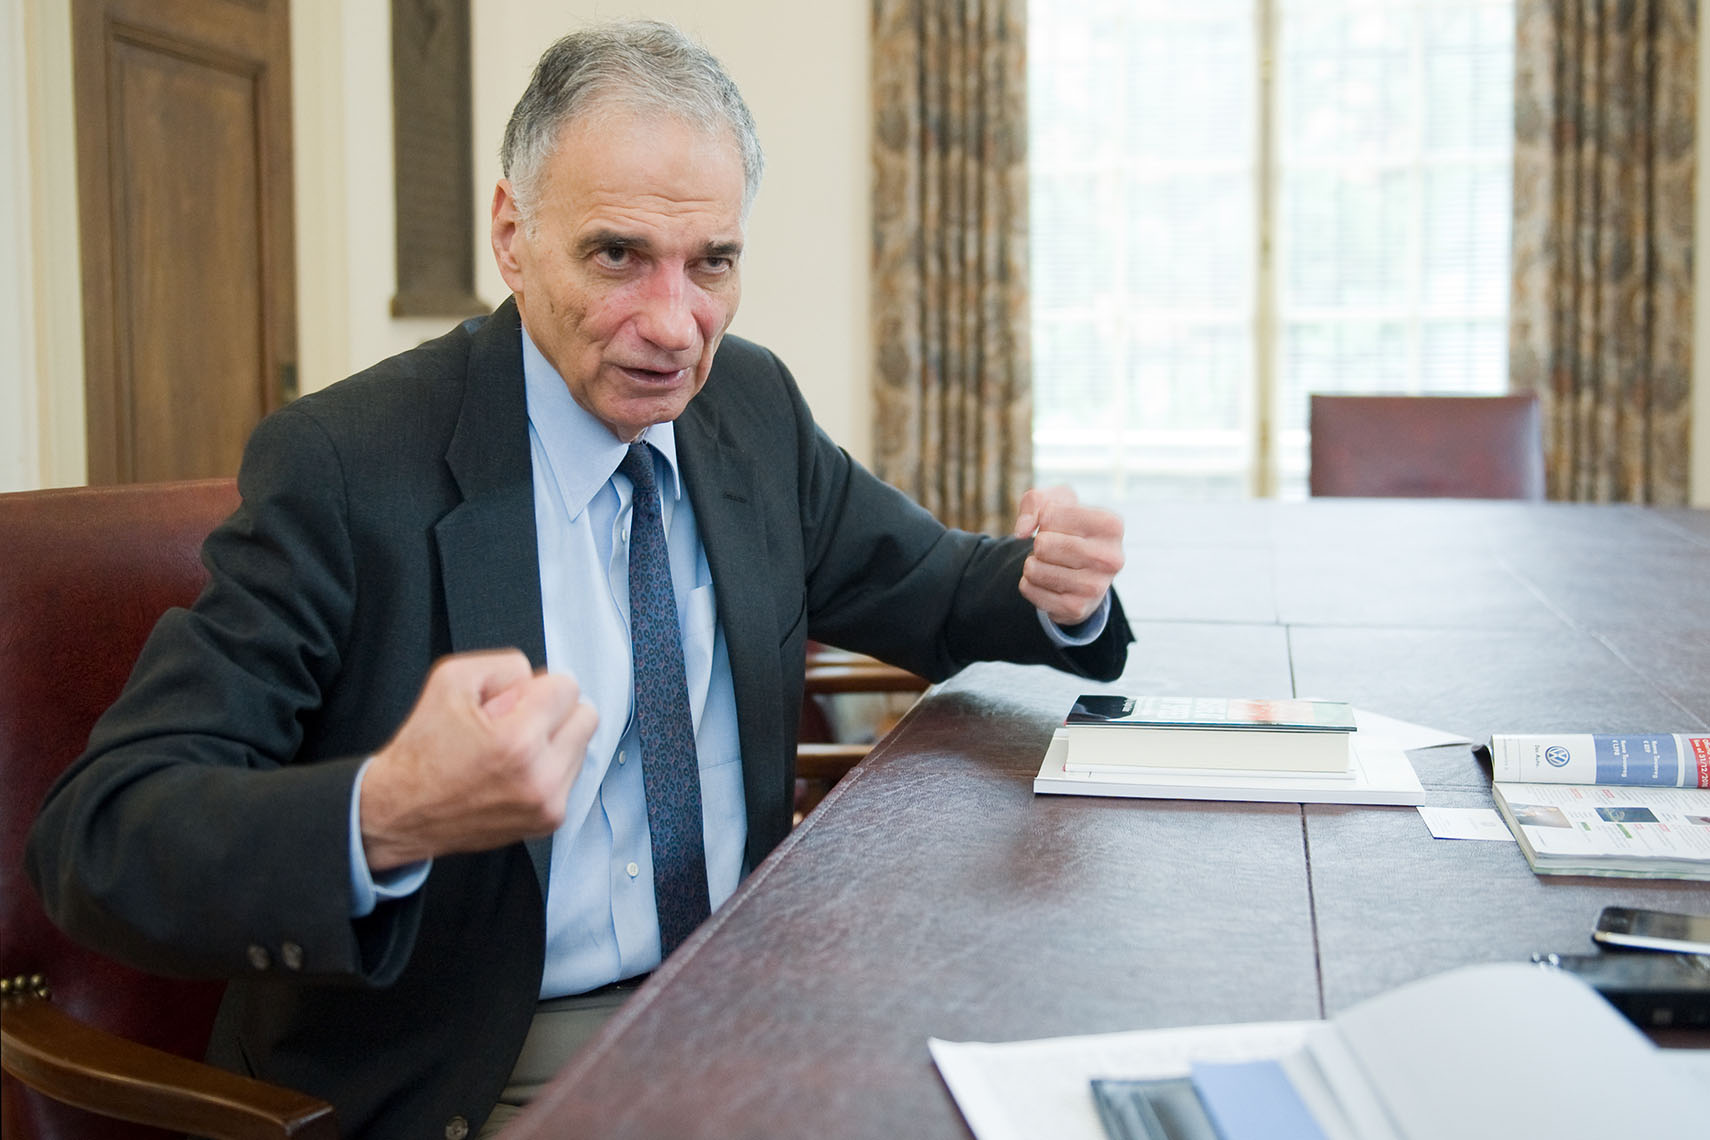 Ralph Nader | Washington DC Photographer Aaron Clamage